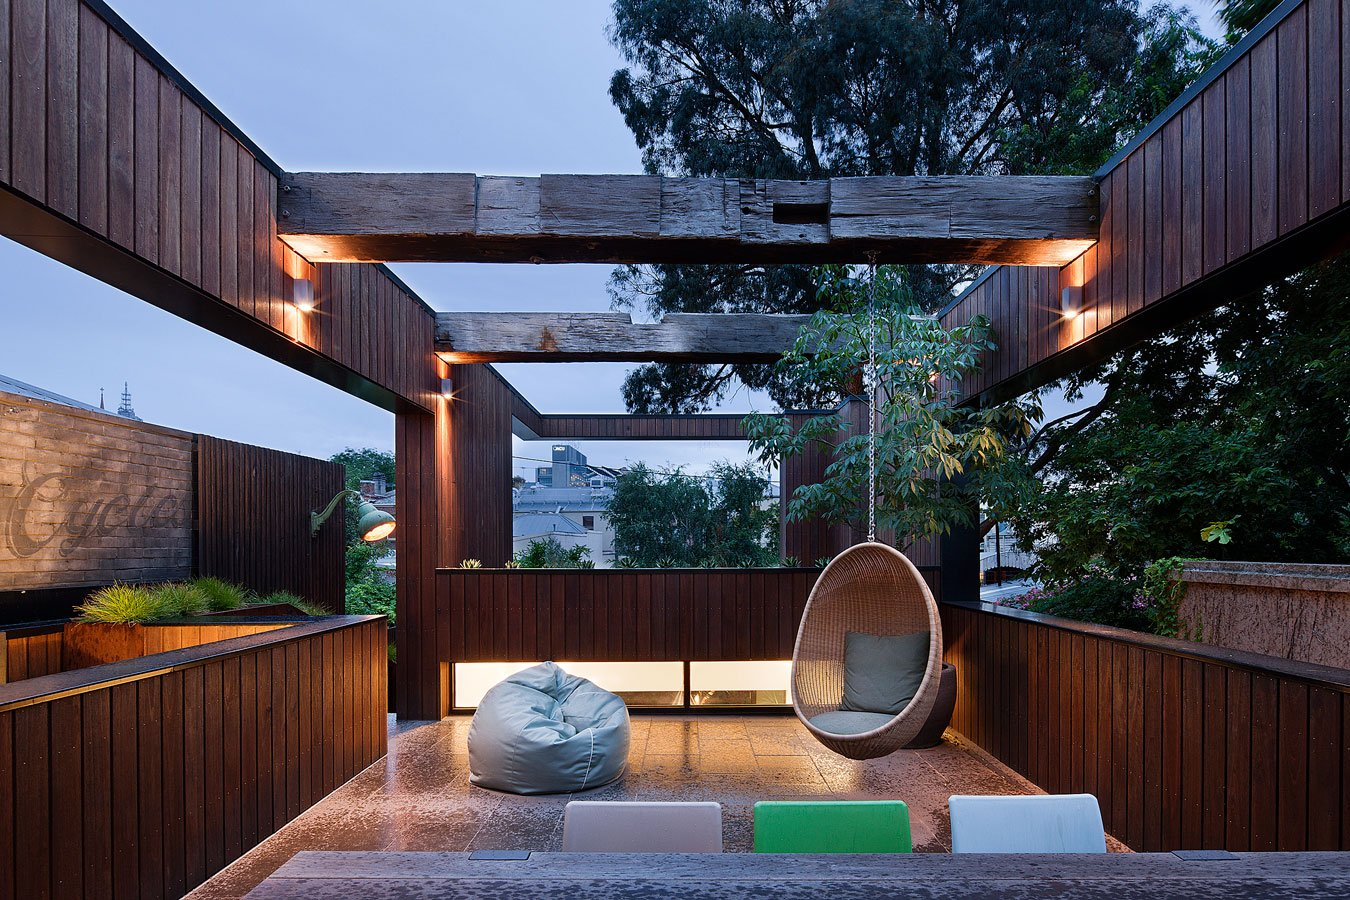 20 unique lighting ideas for your backyard